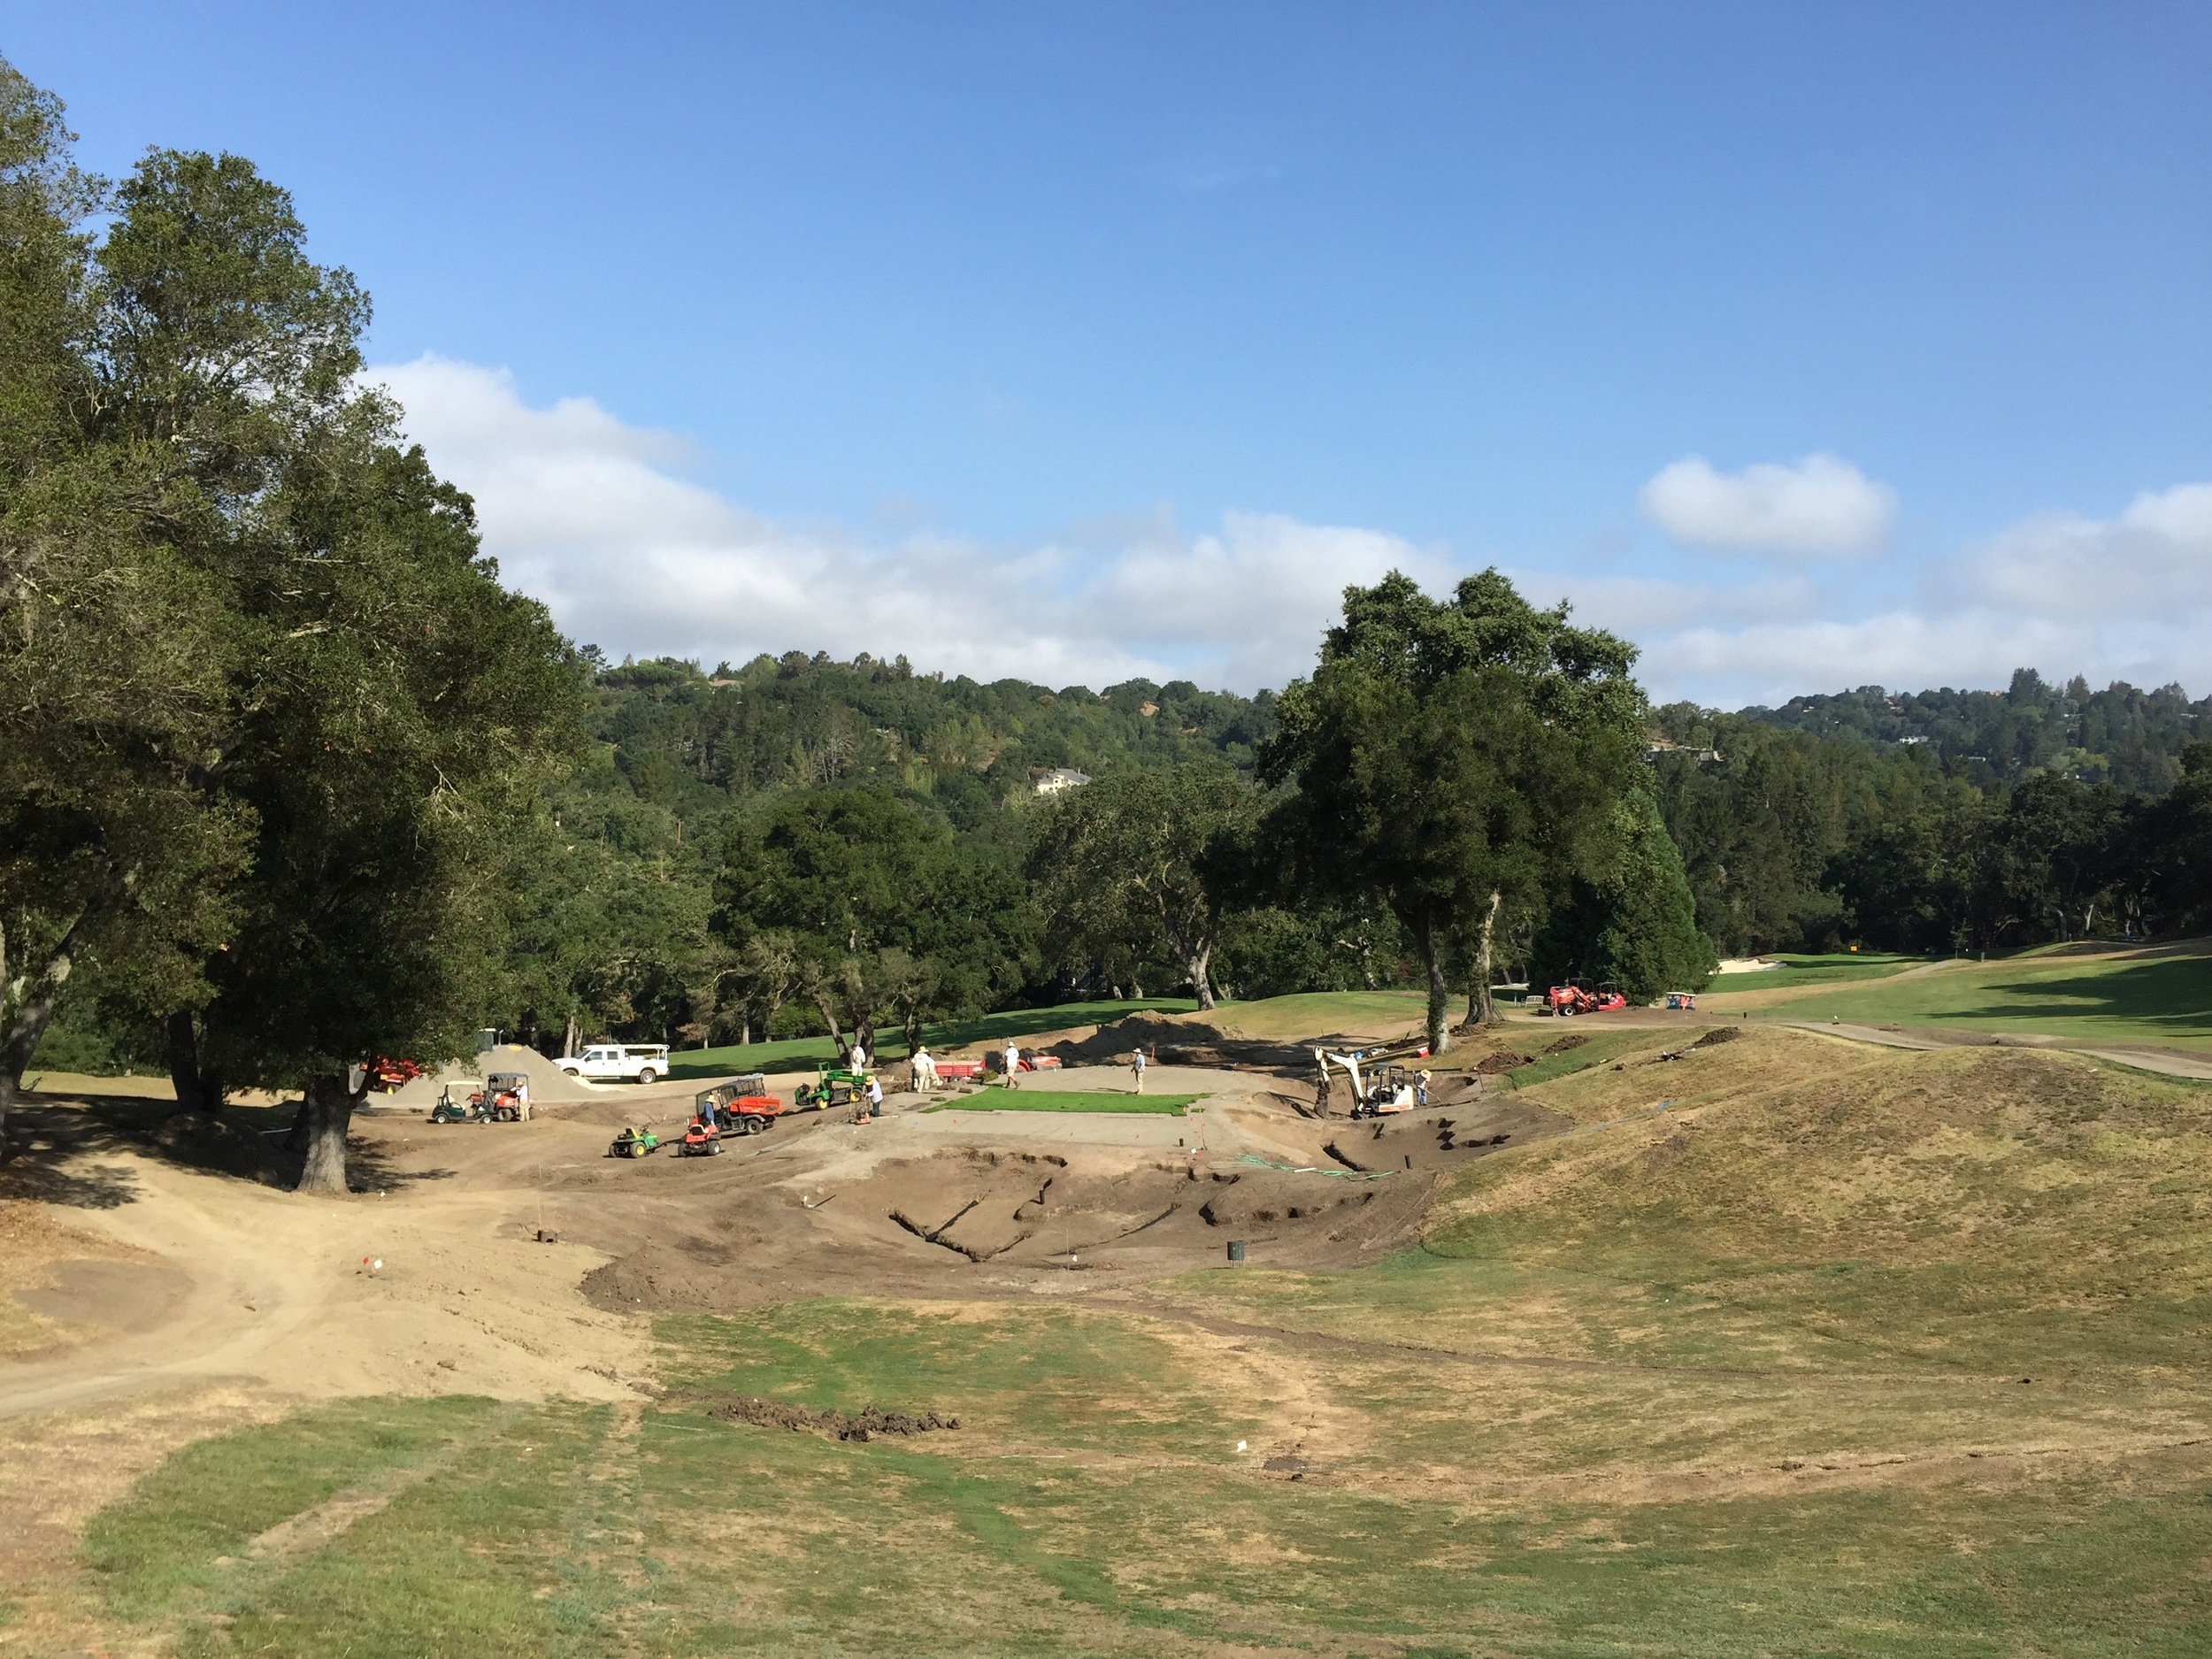 hochstein-design-orinda-cc-hole-8-construction-14.jpg